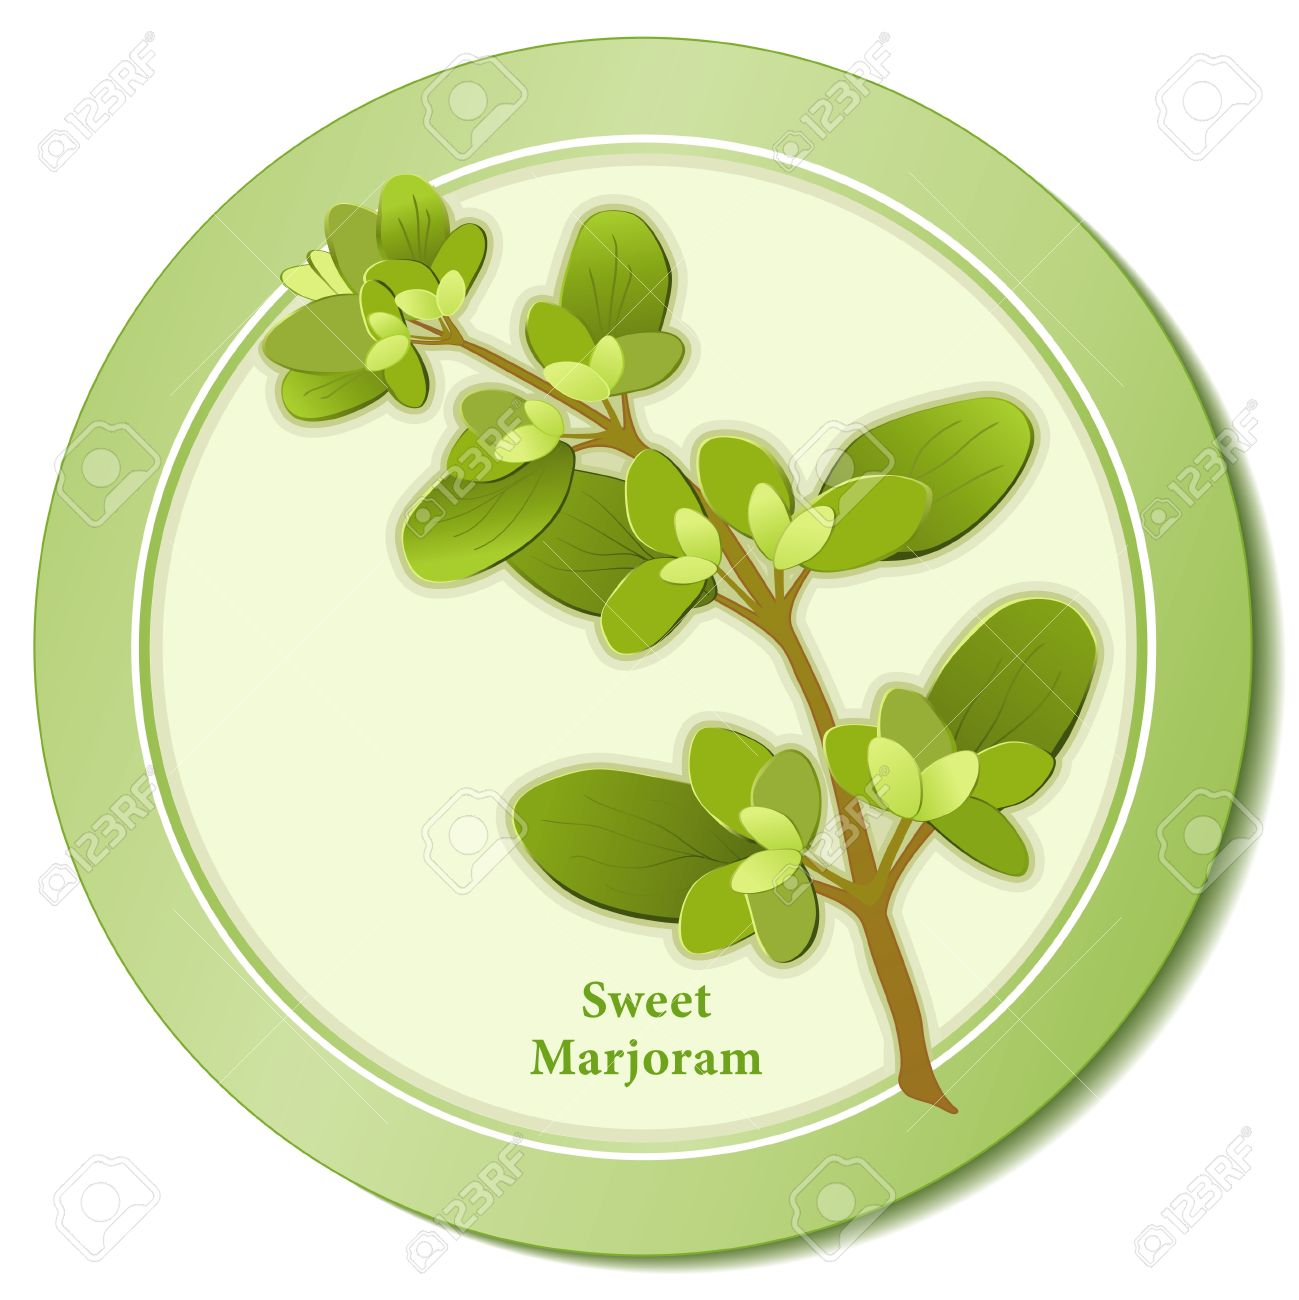 Sweet Marjoram Herb Icon Royalty Free Cliparts, Vectors, And Stock.